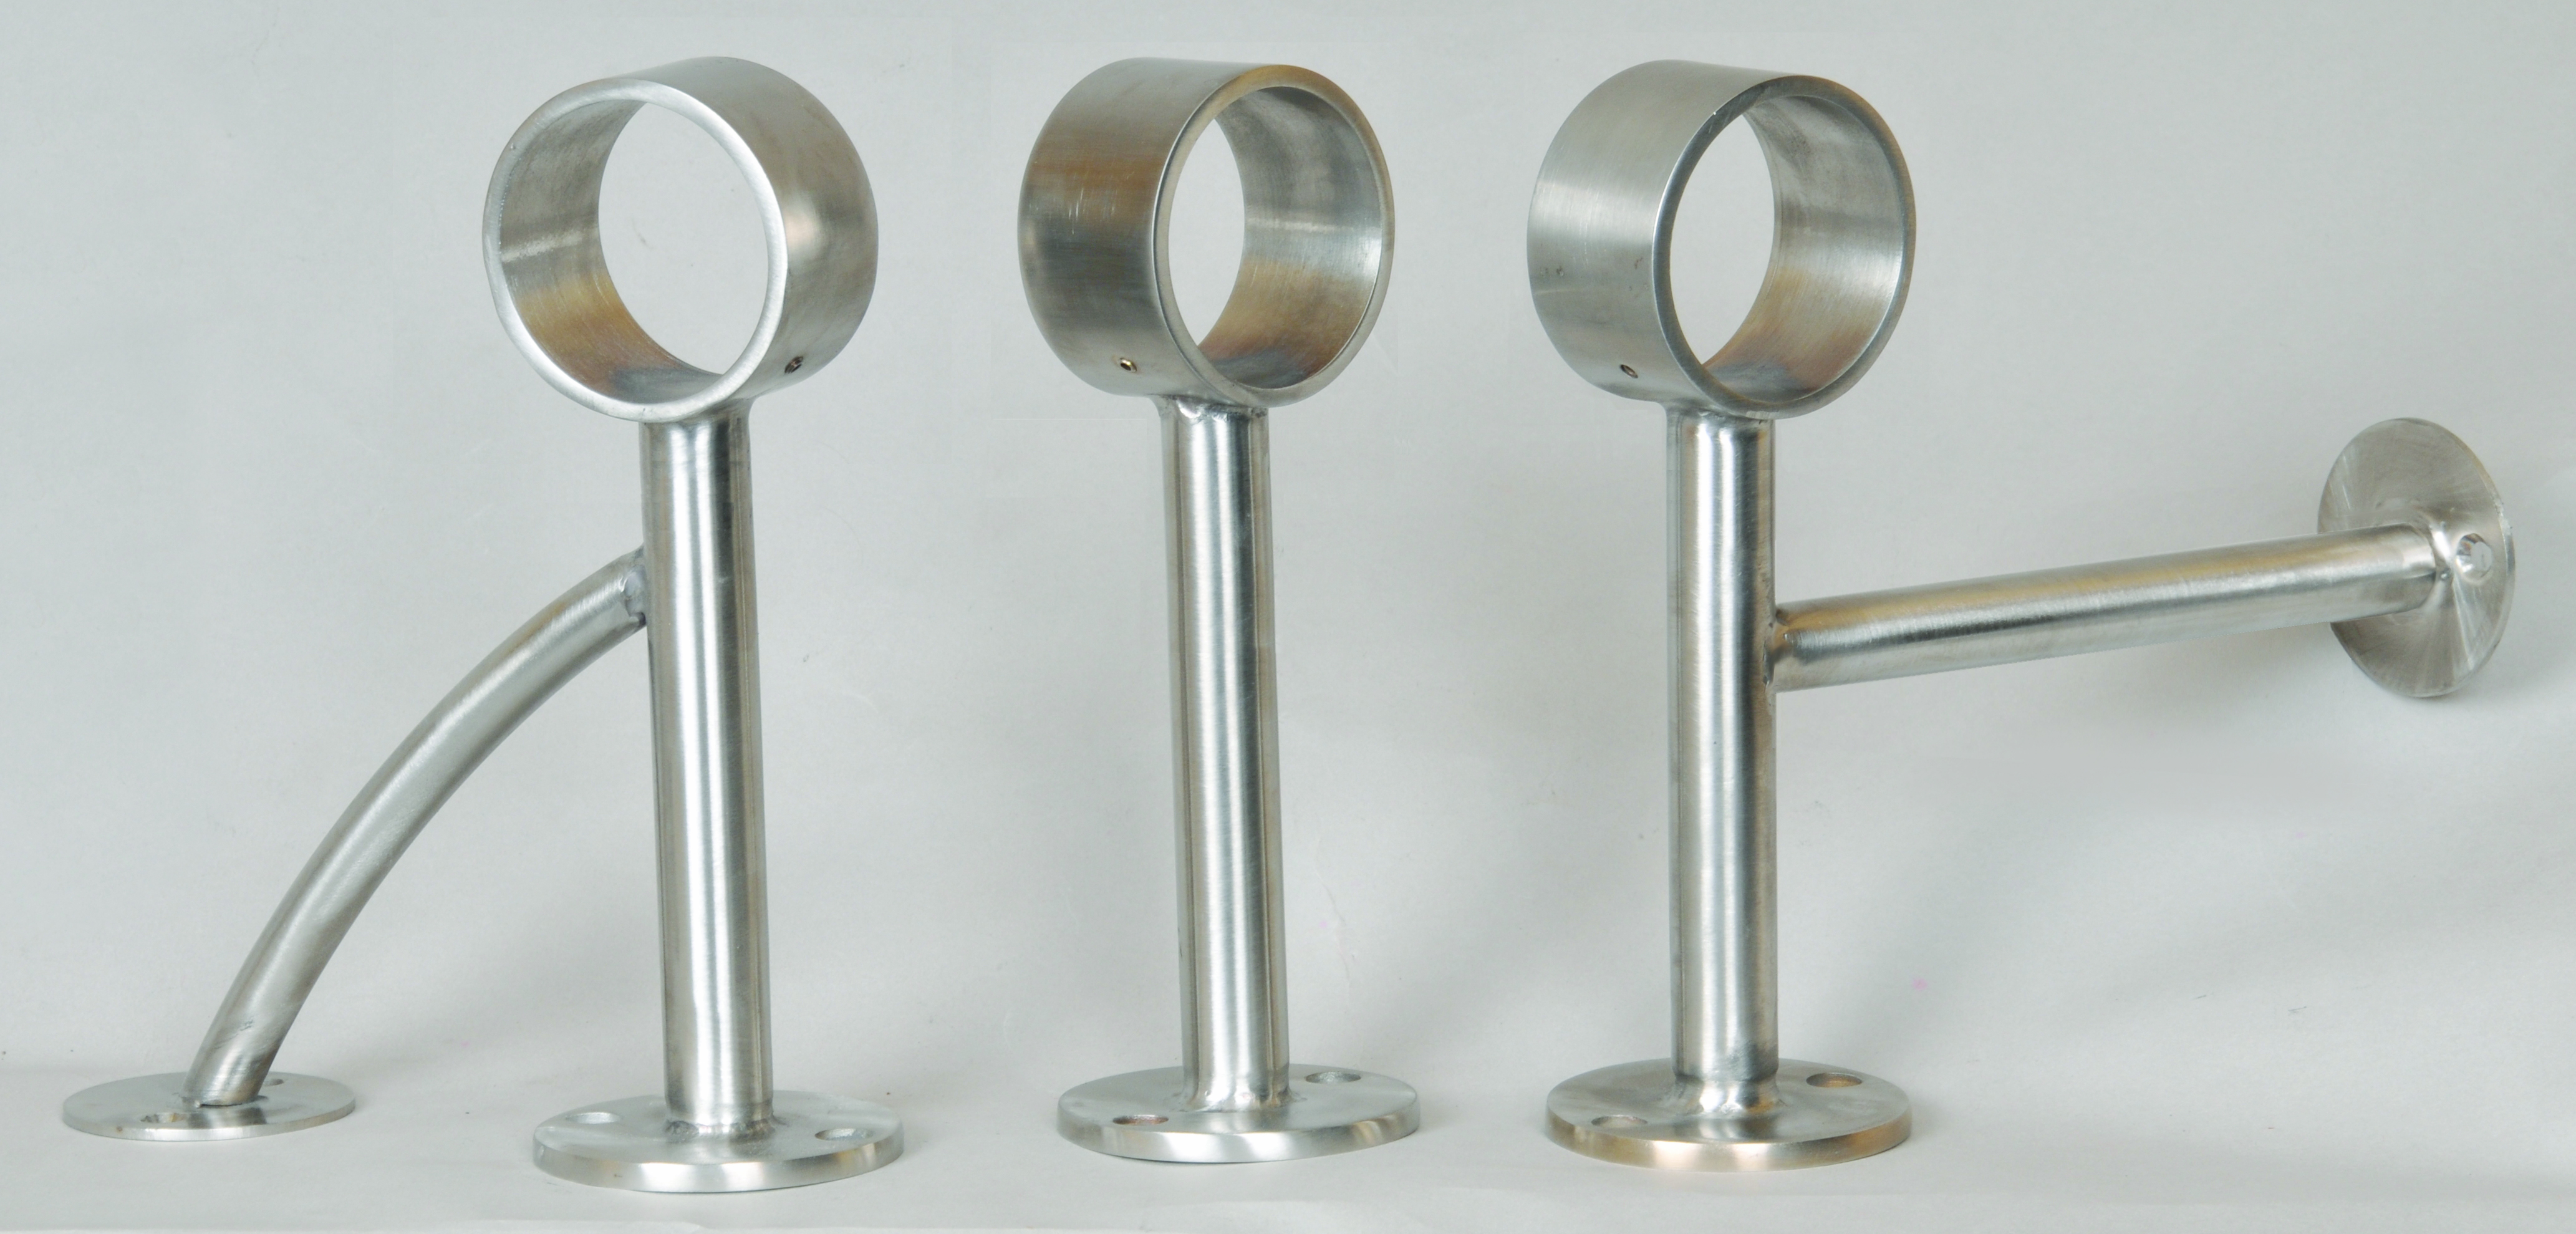 Stainless Steel Fittings & Manufacture - Bar Fittings